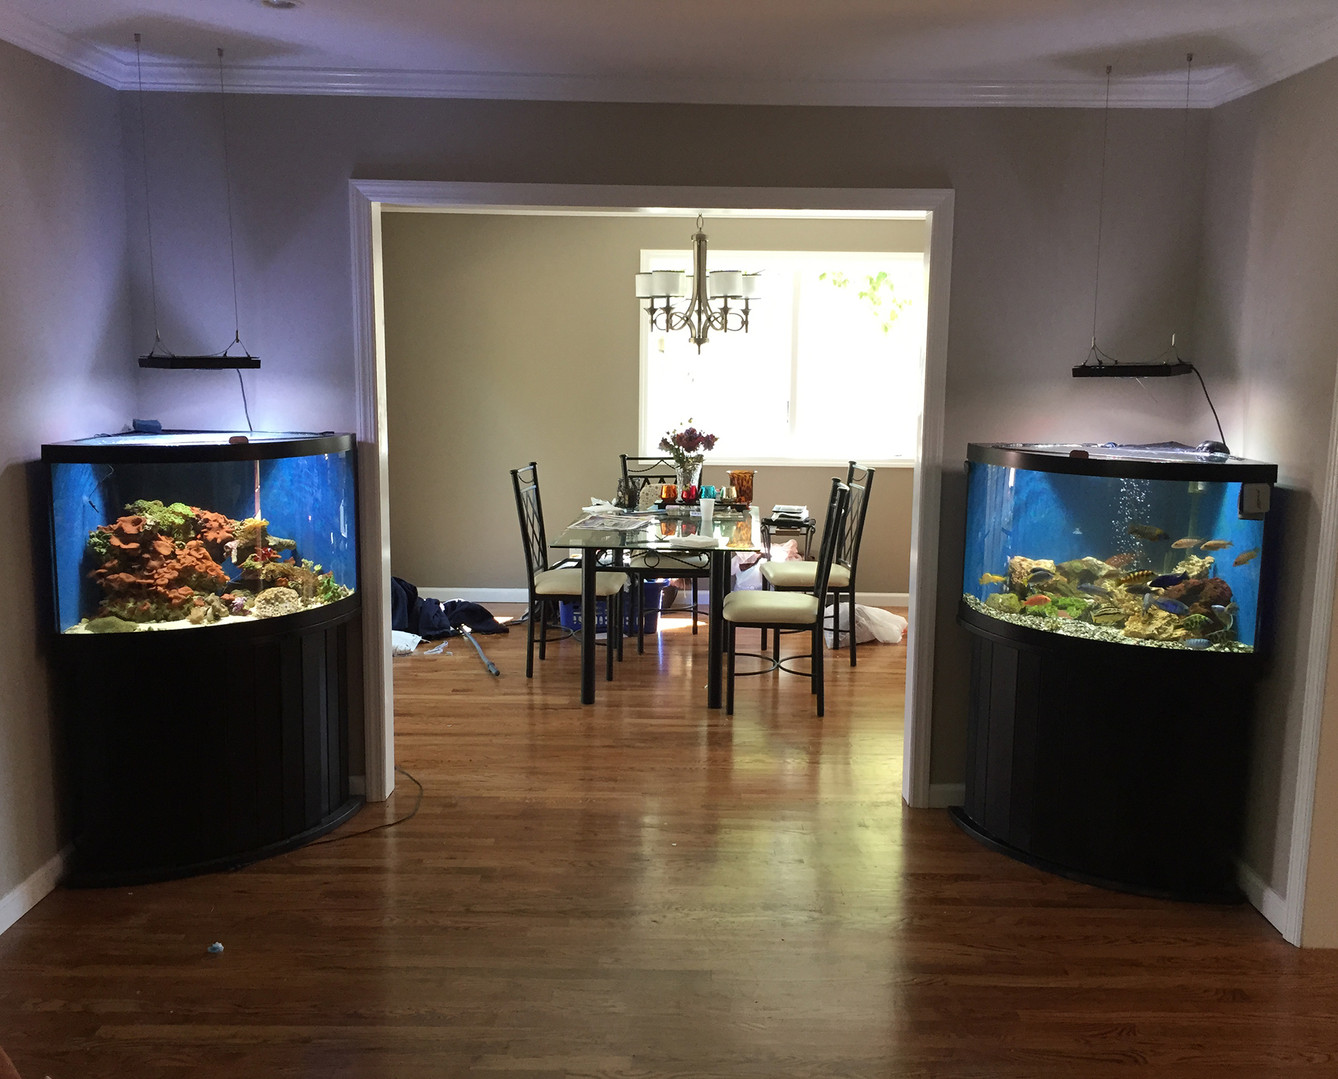 1 room, 2 fish tanks